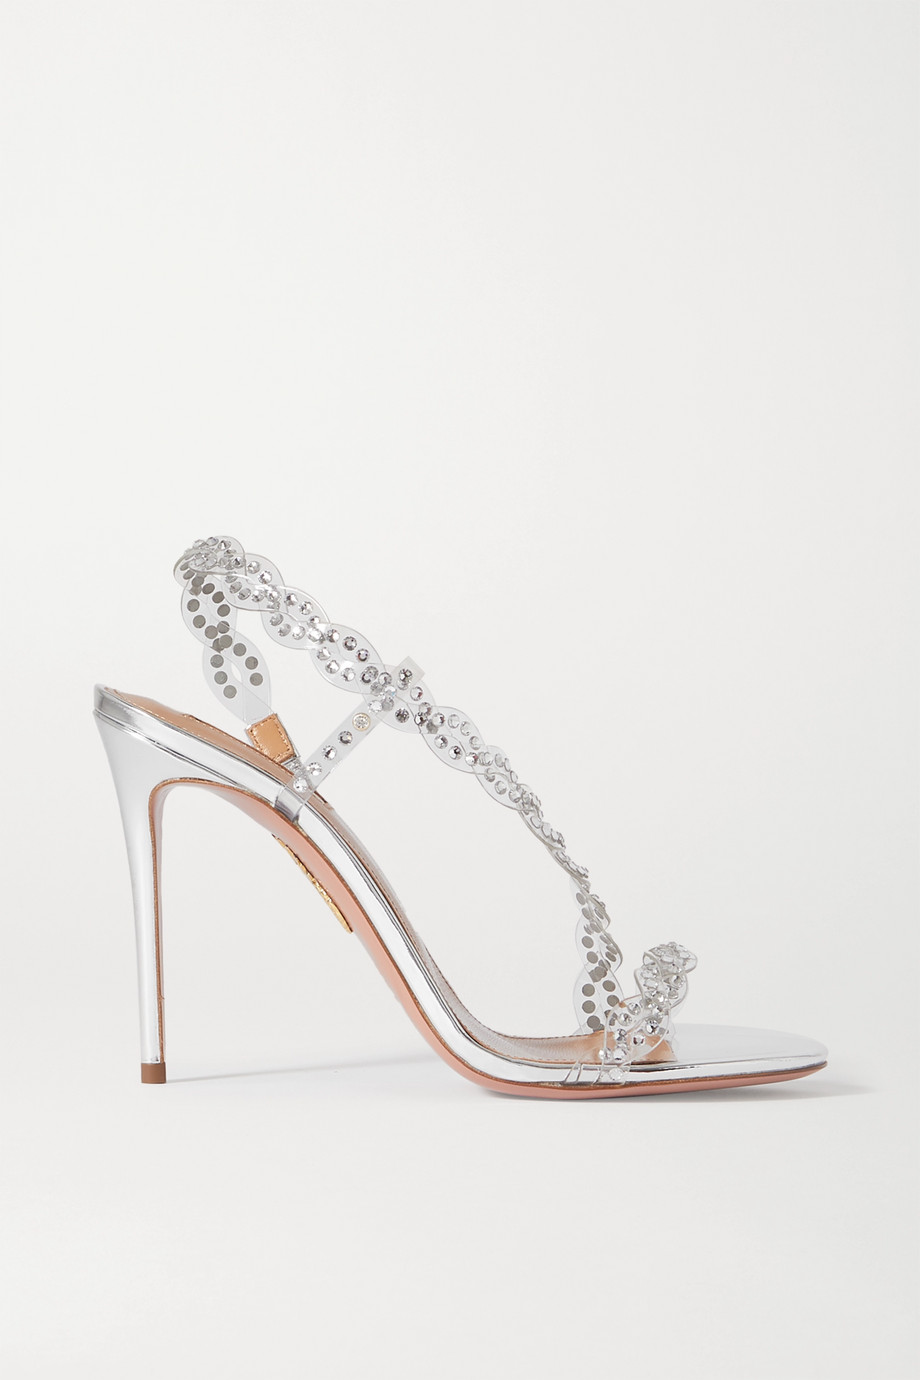 AQUAZZURA Heaven crystal-embellished PVC sandals